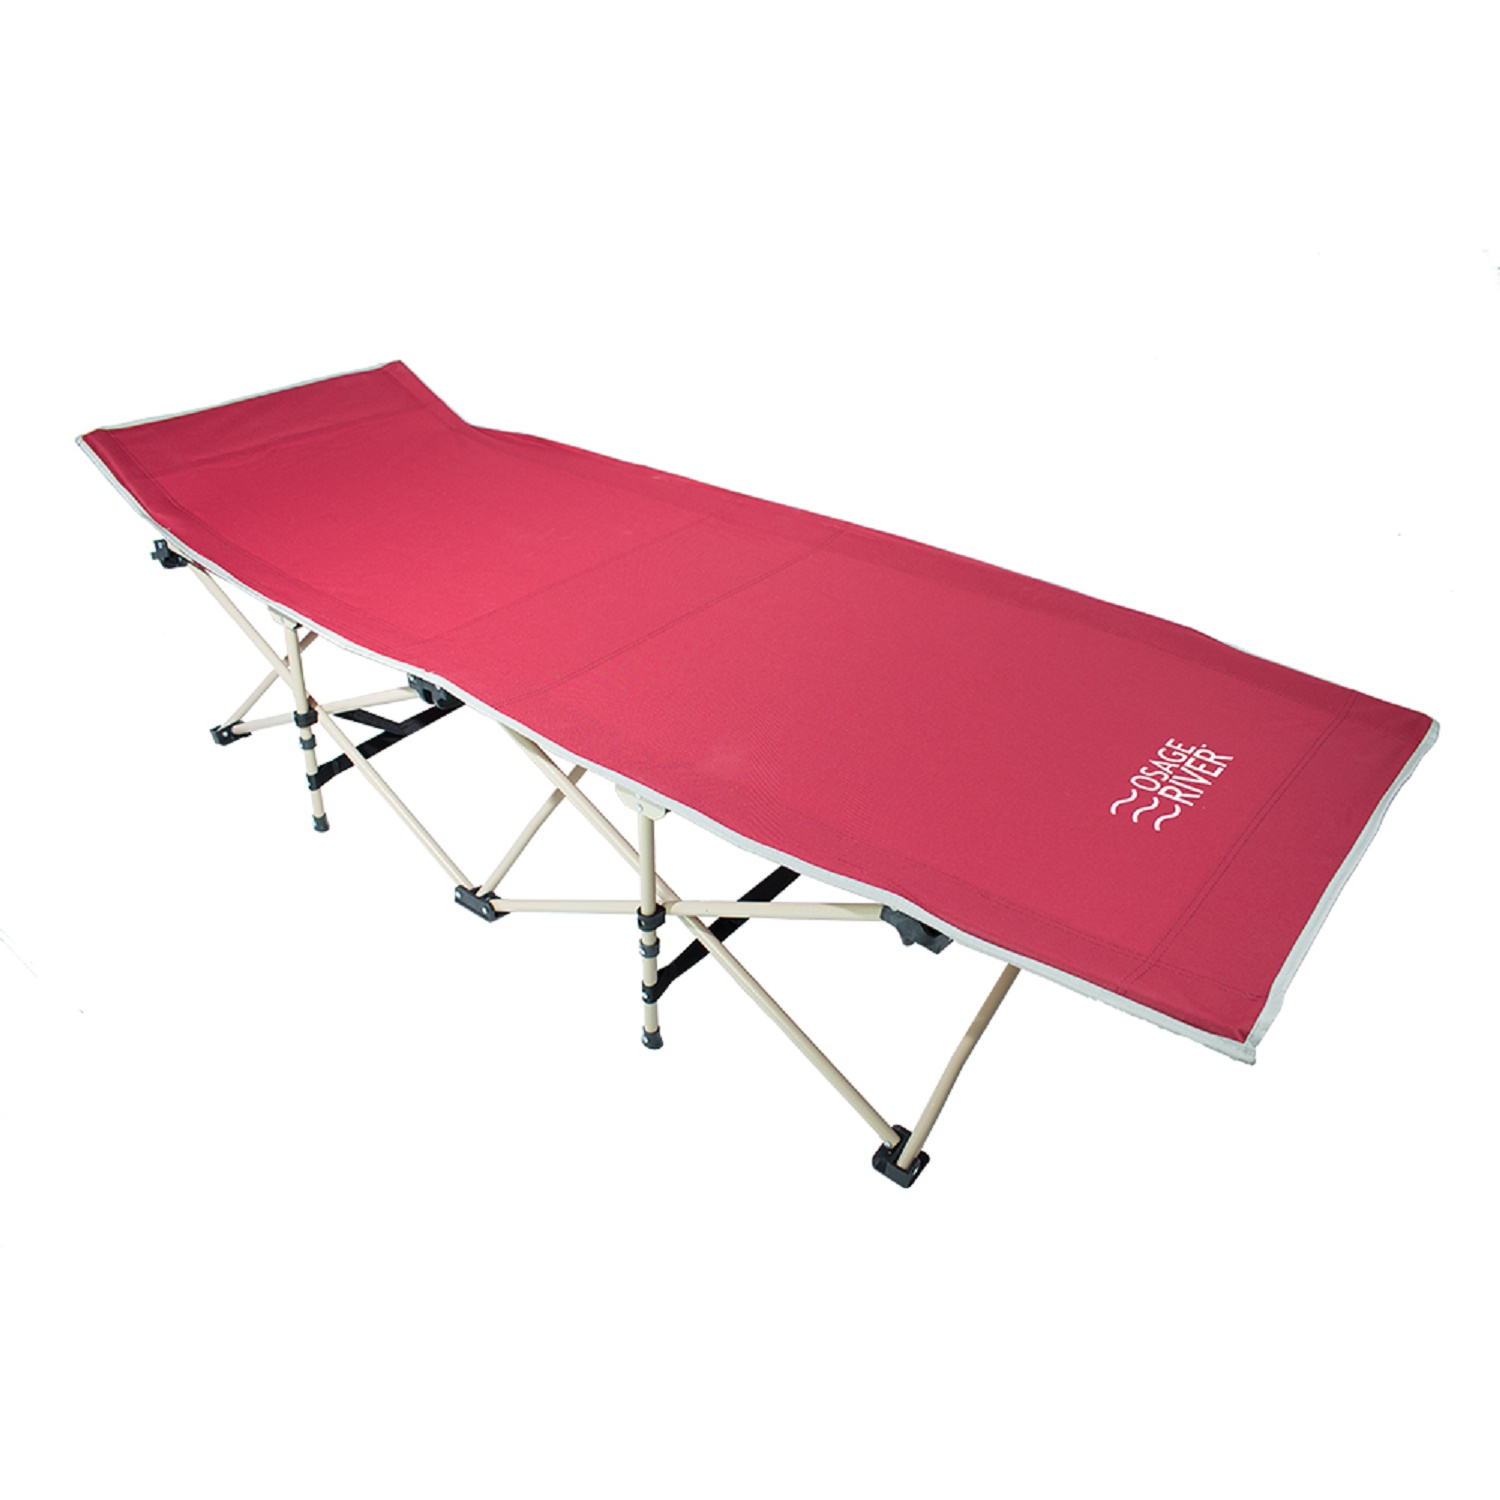 Osage River Folding Camp Cot with Carry Bag Red by Osage River